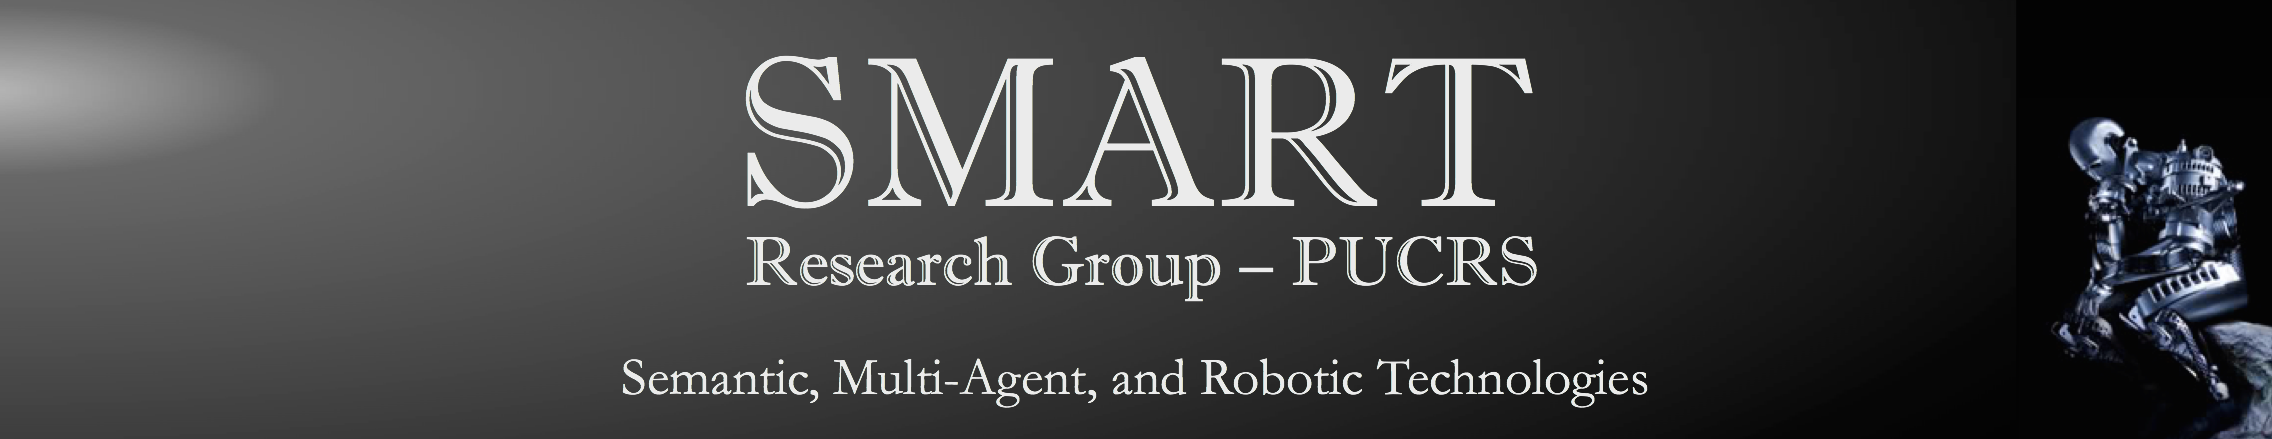 Research Group on Semantic, Multi-Agent, and Robotic Technologies (SMART) banner image